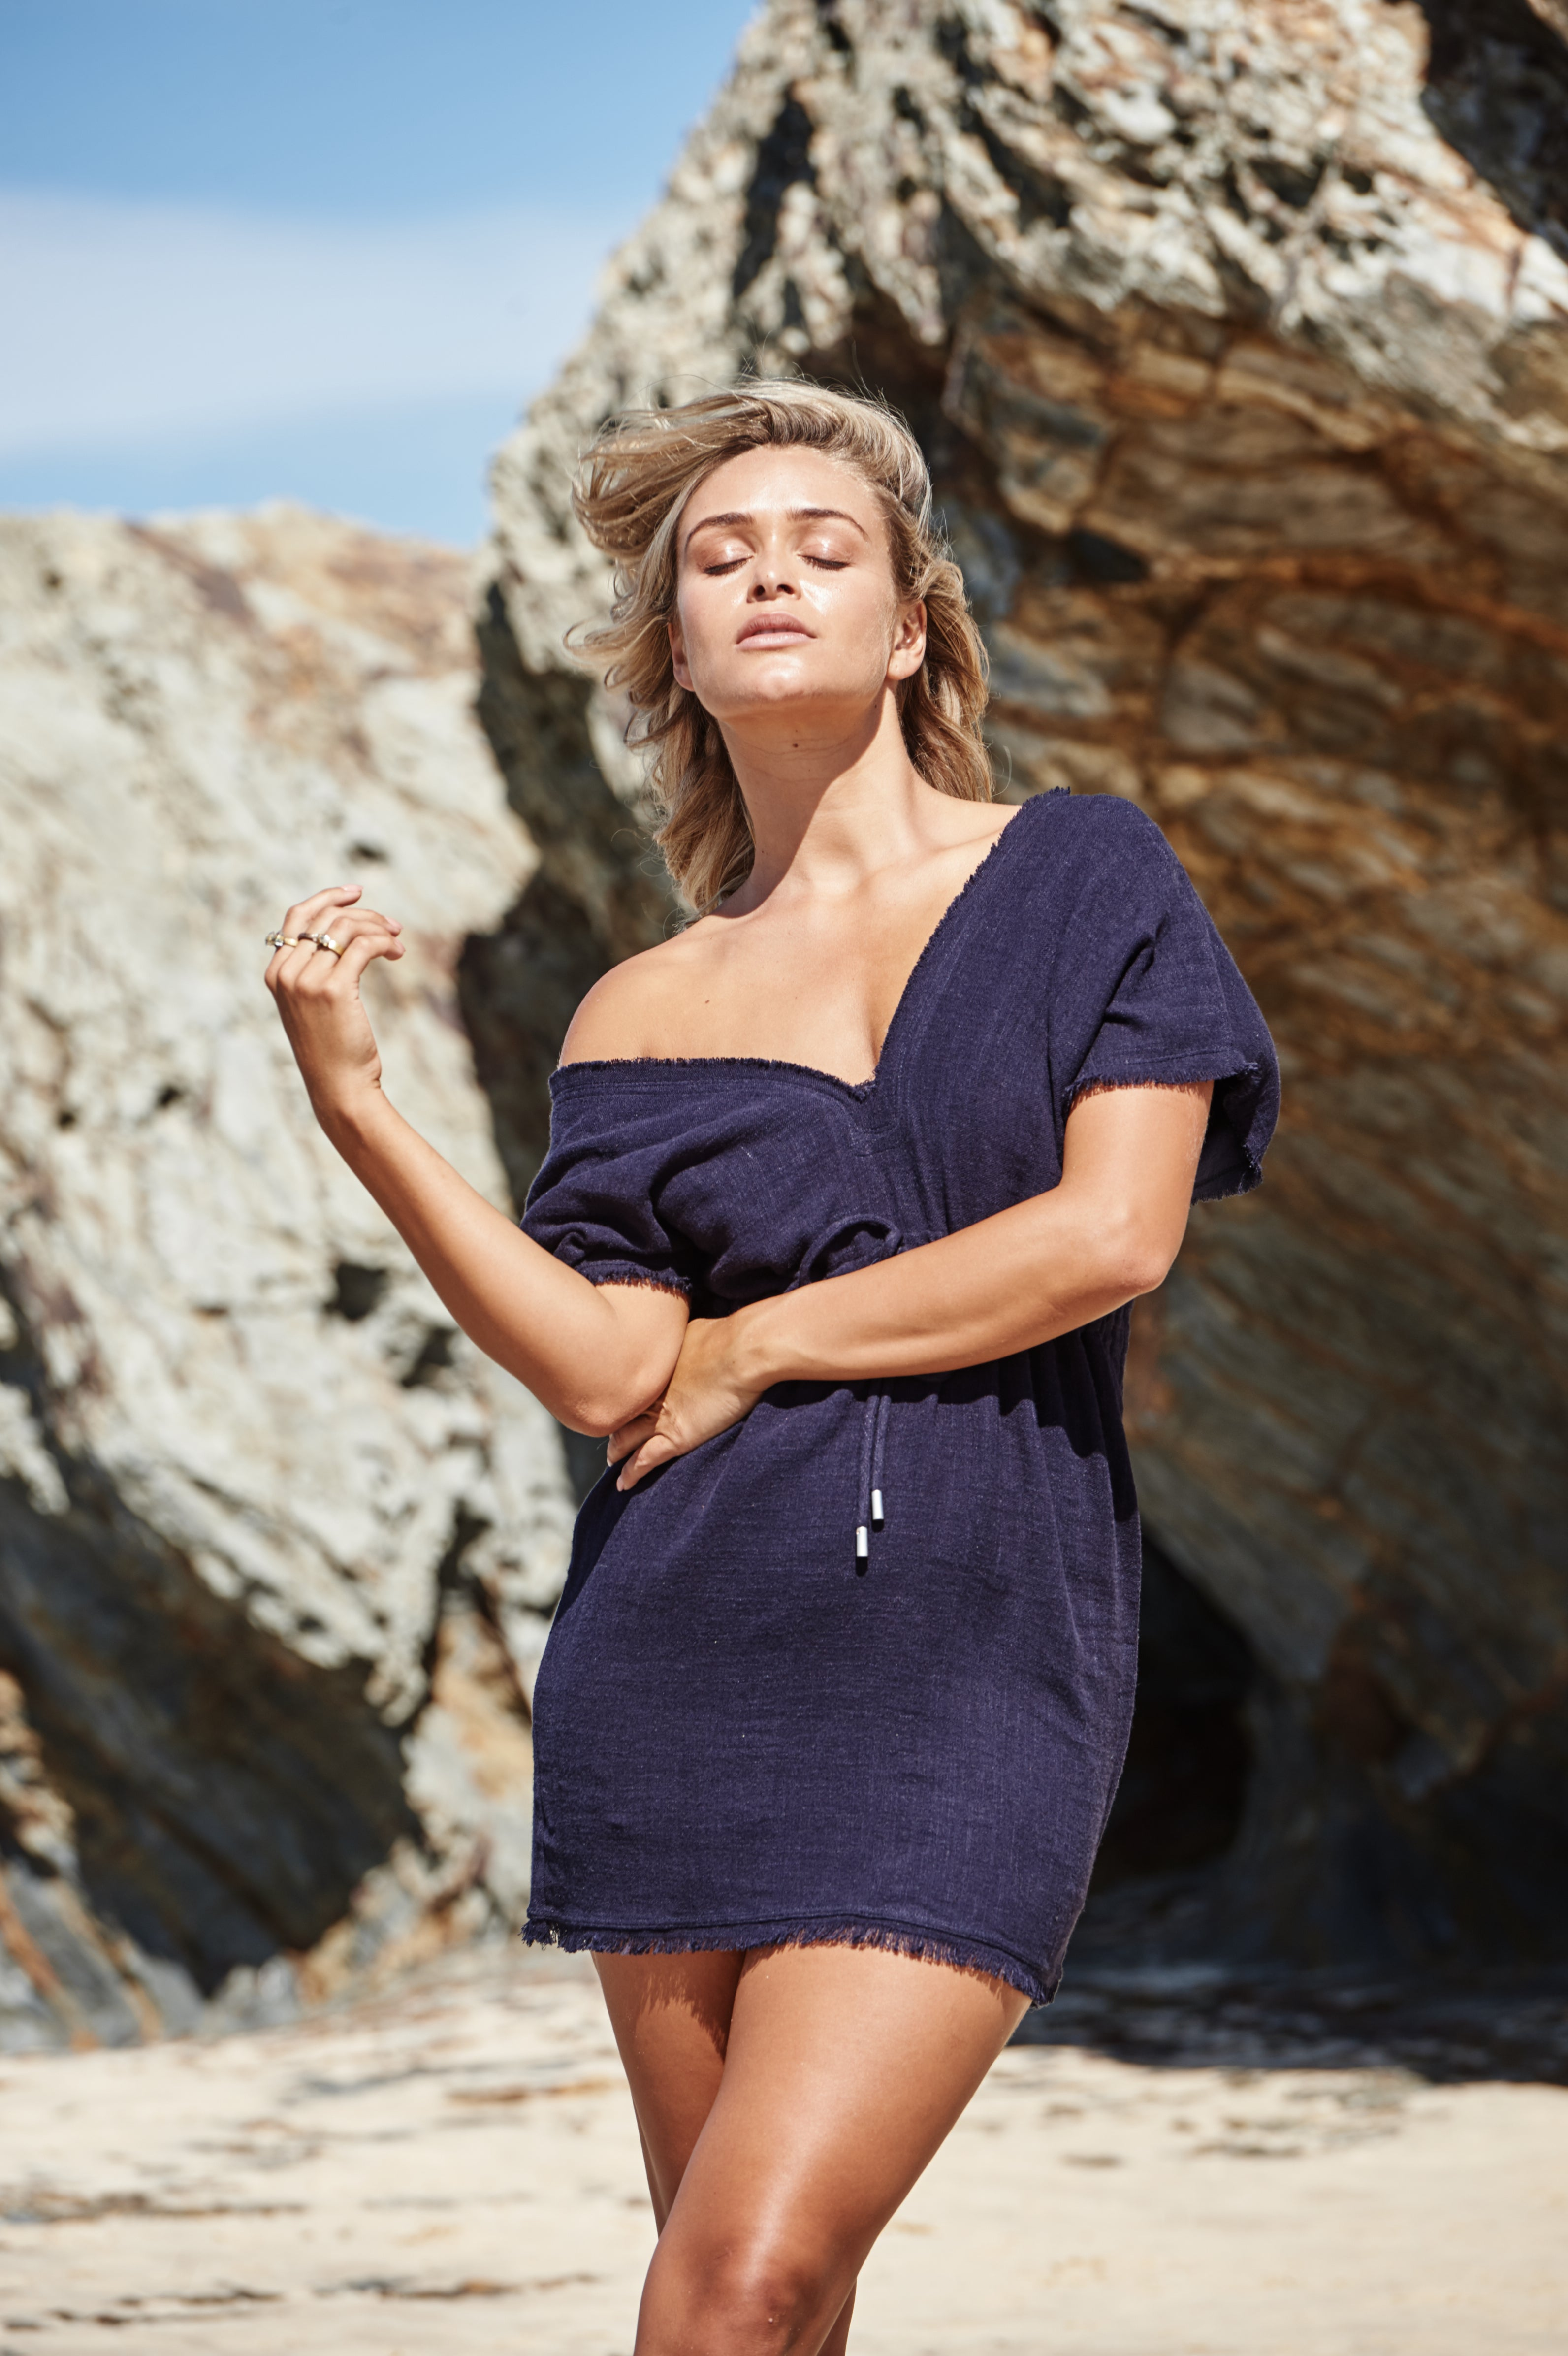 Akosee Navy Blue Beach Cover-up Kaftan Dress